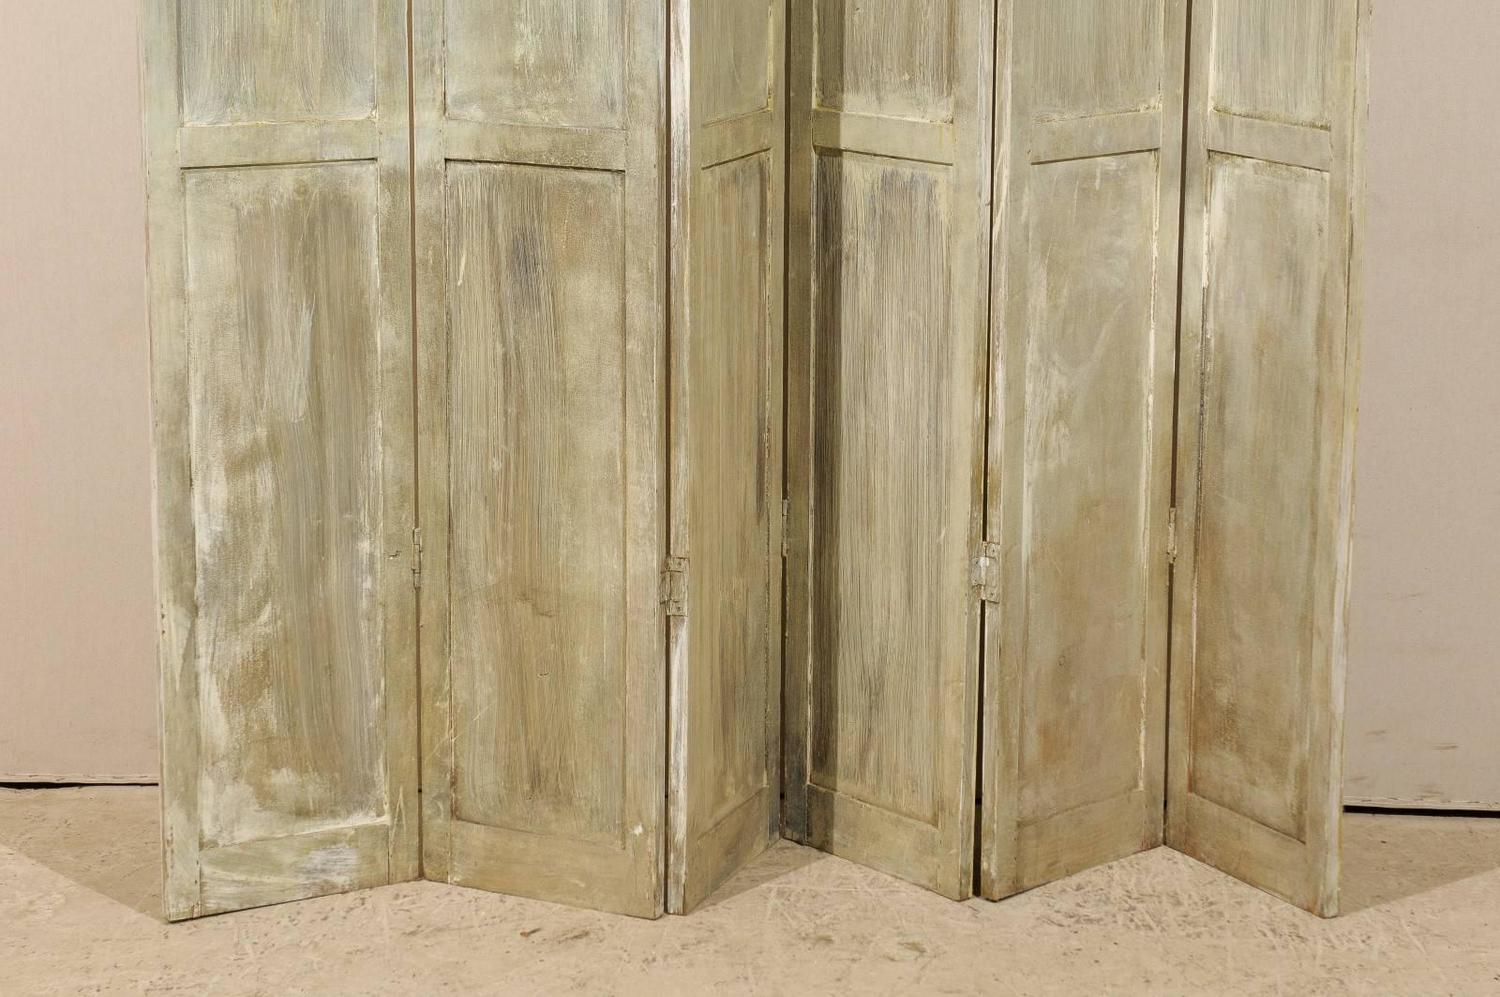 28 accordion style room dividers wood folding screen or roo